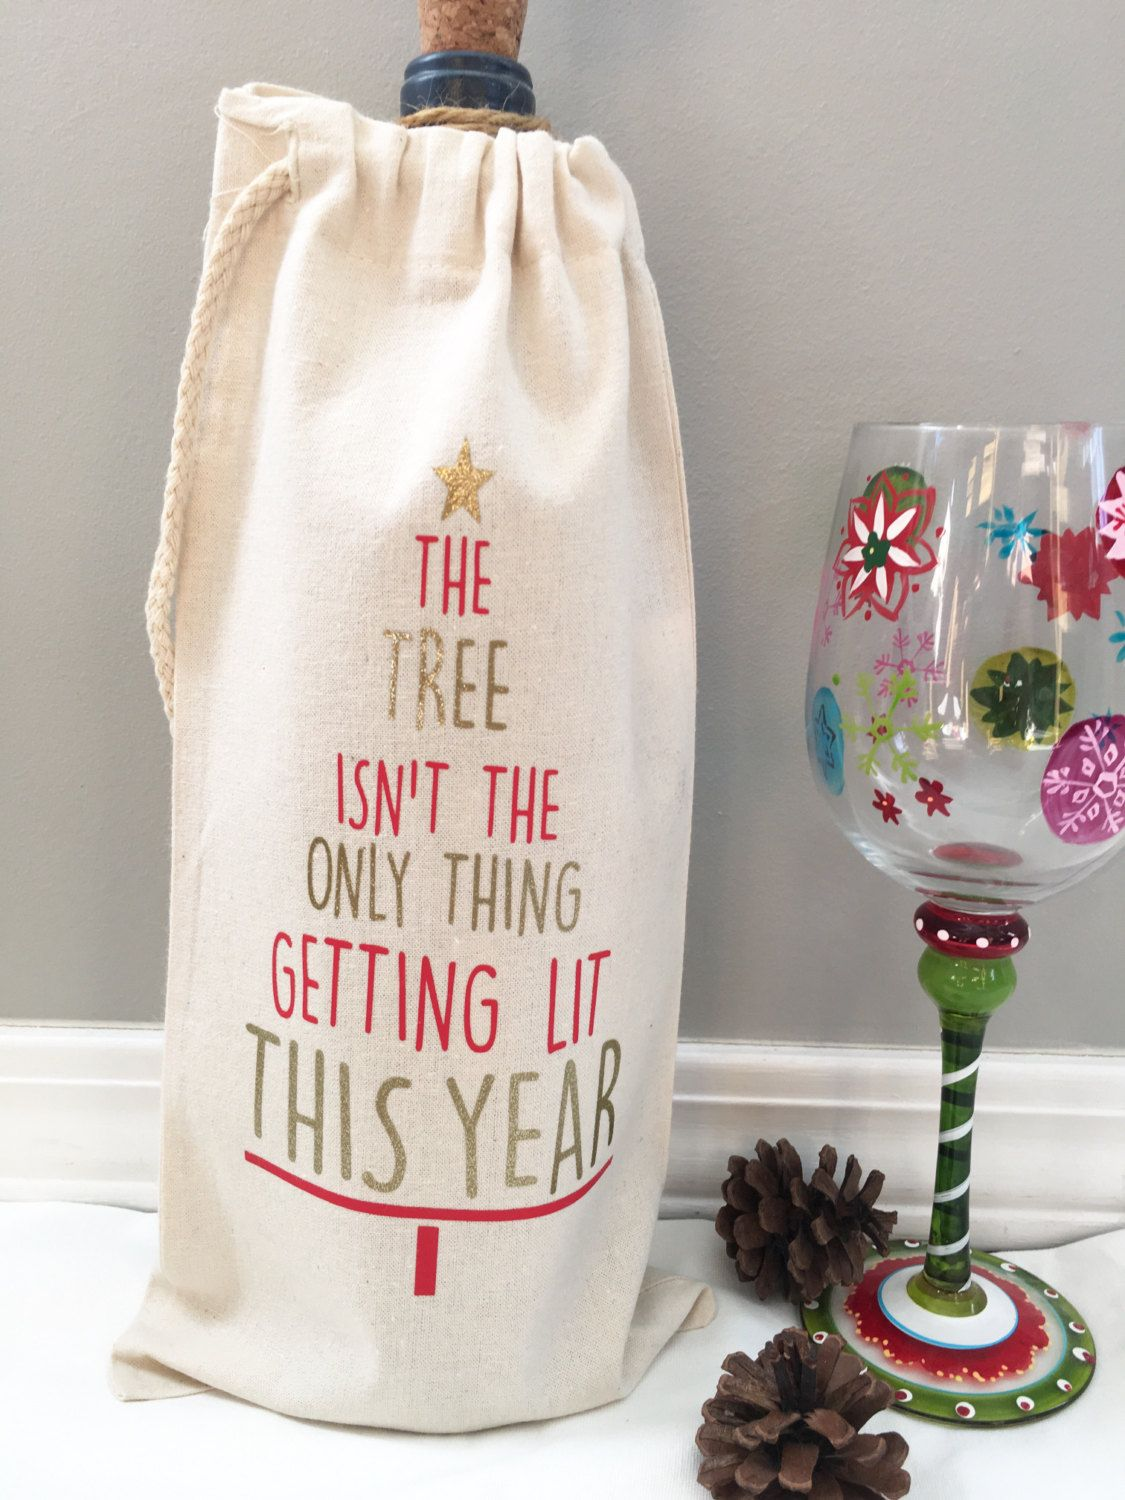 12 x Christmas Wine Bottle Gift Bags Champagne Xmas Present Wine Carrier Handles